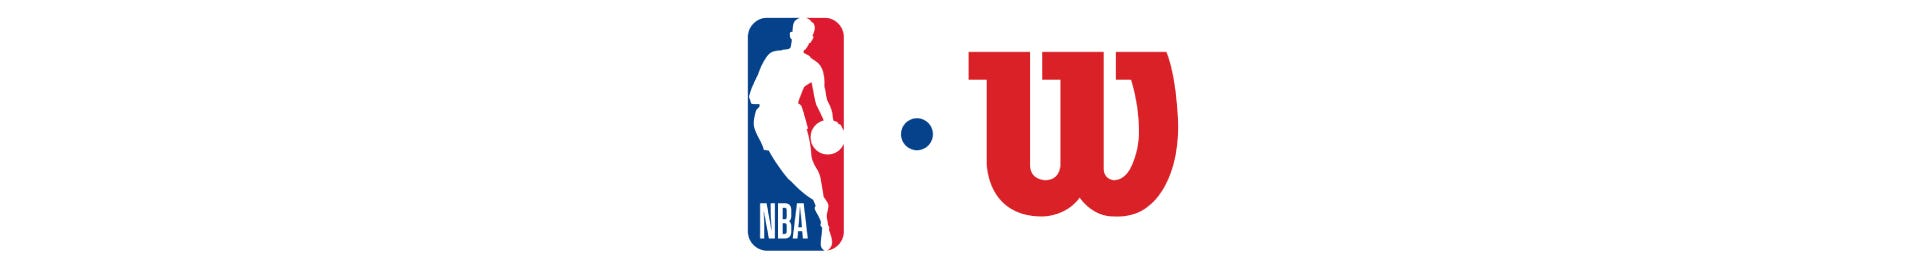 Wilson Partners with the NBA - Coming soon 21/22 season